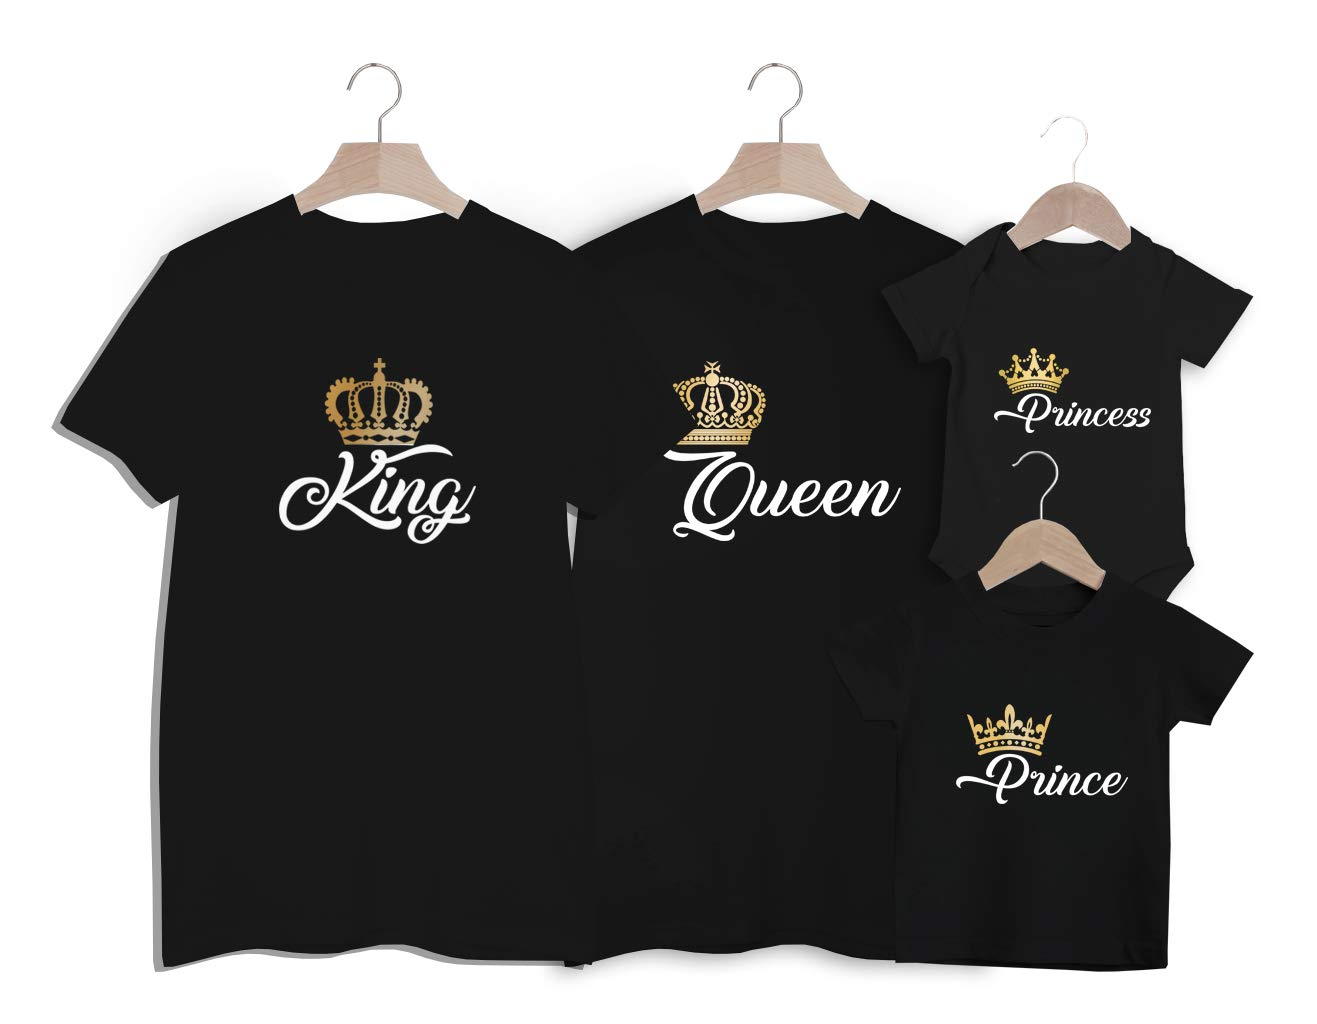 ROYAL family king queen prince princess babygrow and adult t-shirts organic cotton gift for family newborn